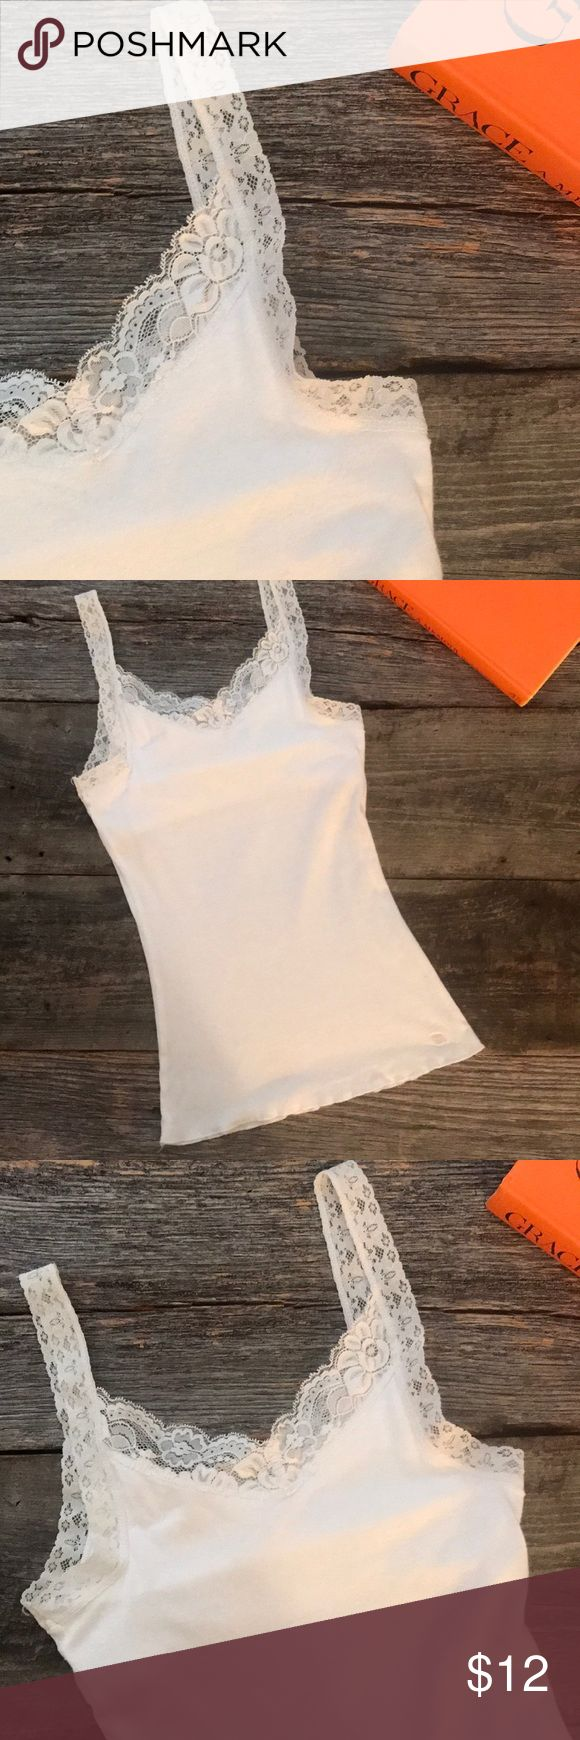 || A & F || Cotton Lace Camisole with Shelf Bra 100 % white cotton camisole with lace straps. Built in shelf bra. This top is in excellent used condition - hand washed and line dried to keep colour and shape. Great for layering. Abercrombie & Fitch Tops Camisoles